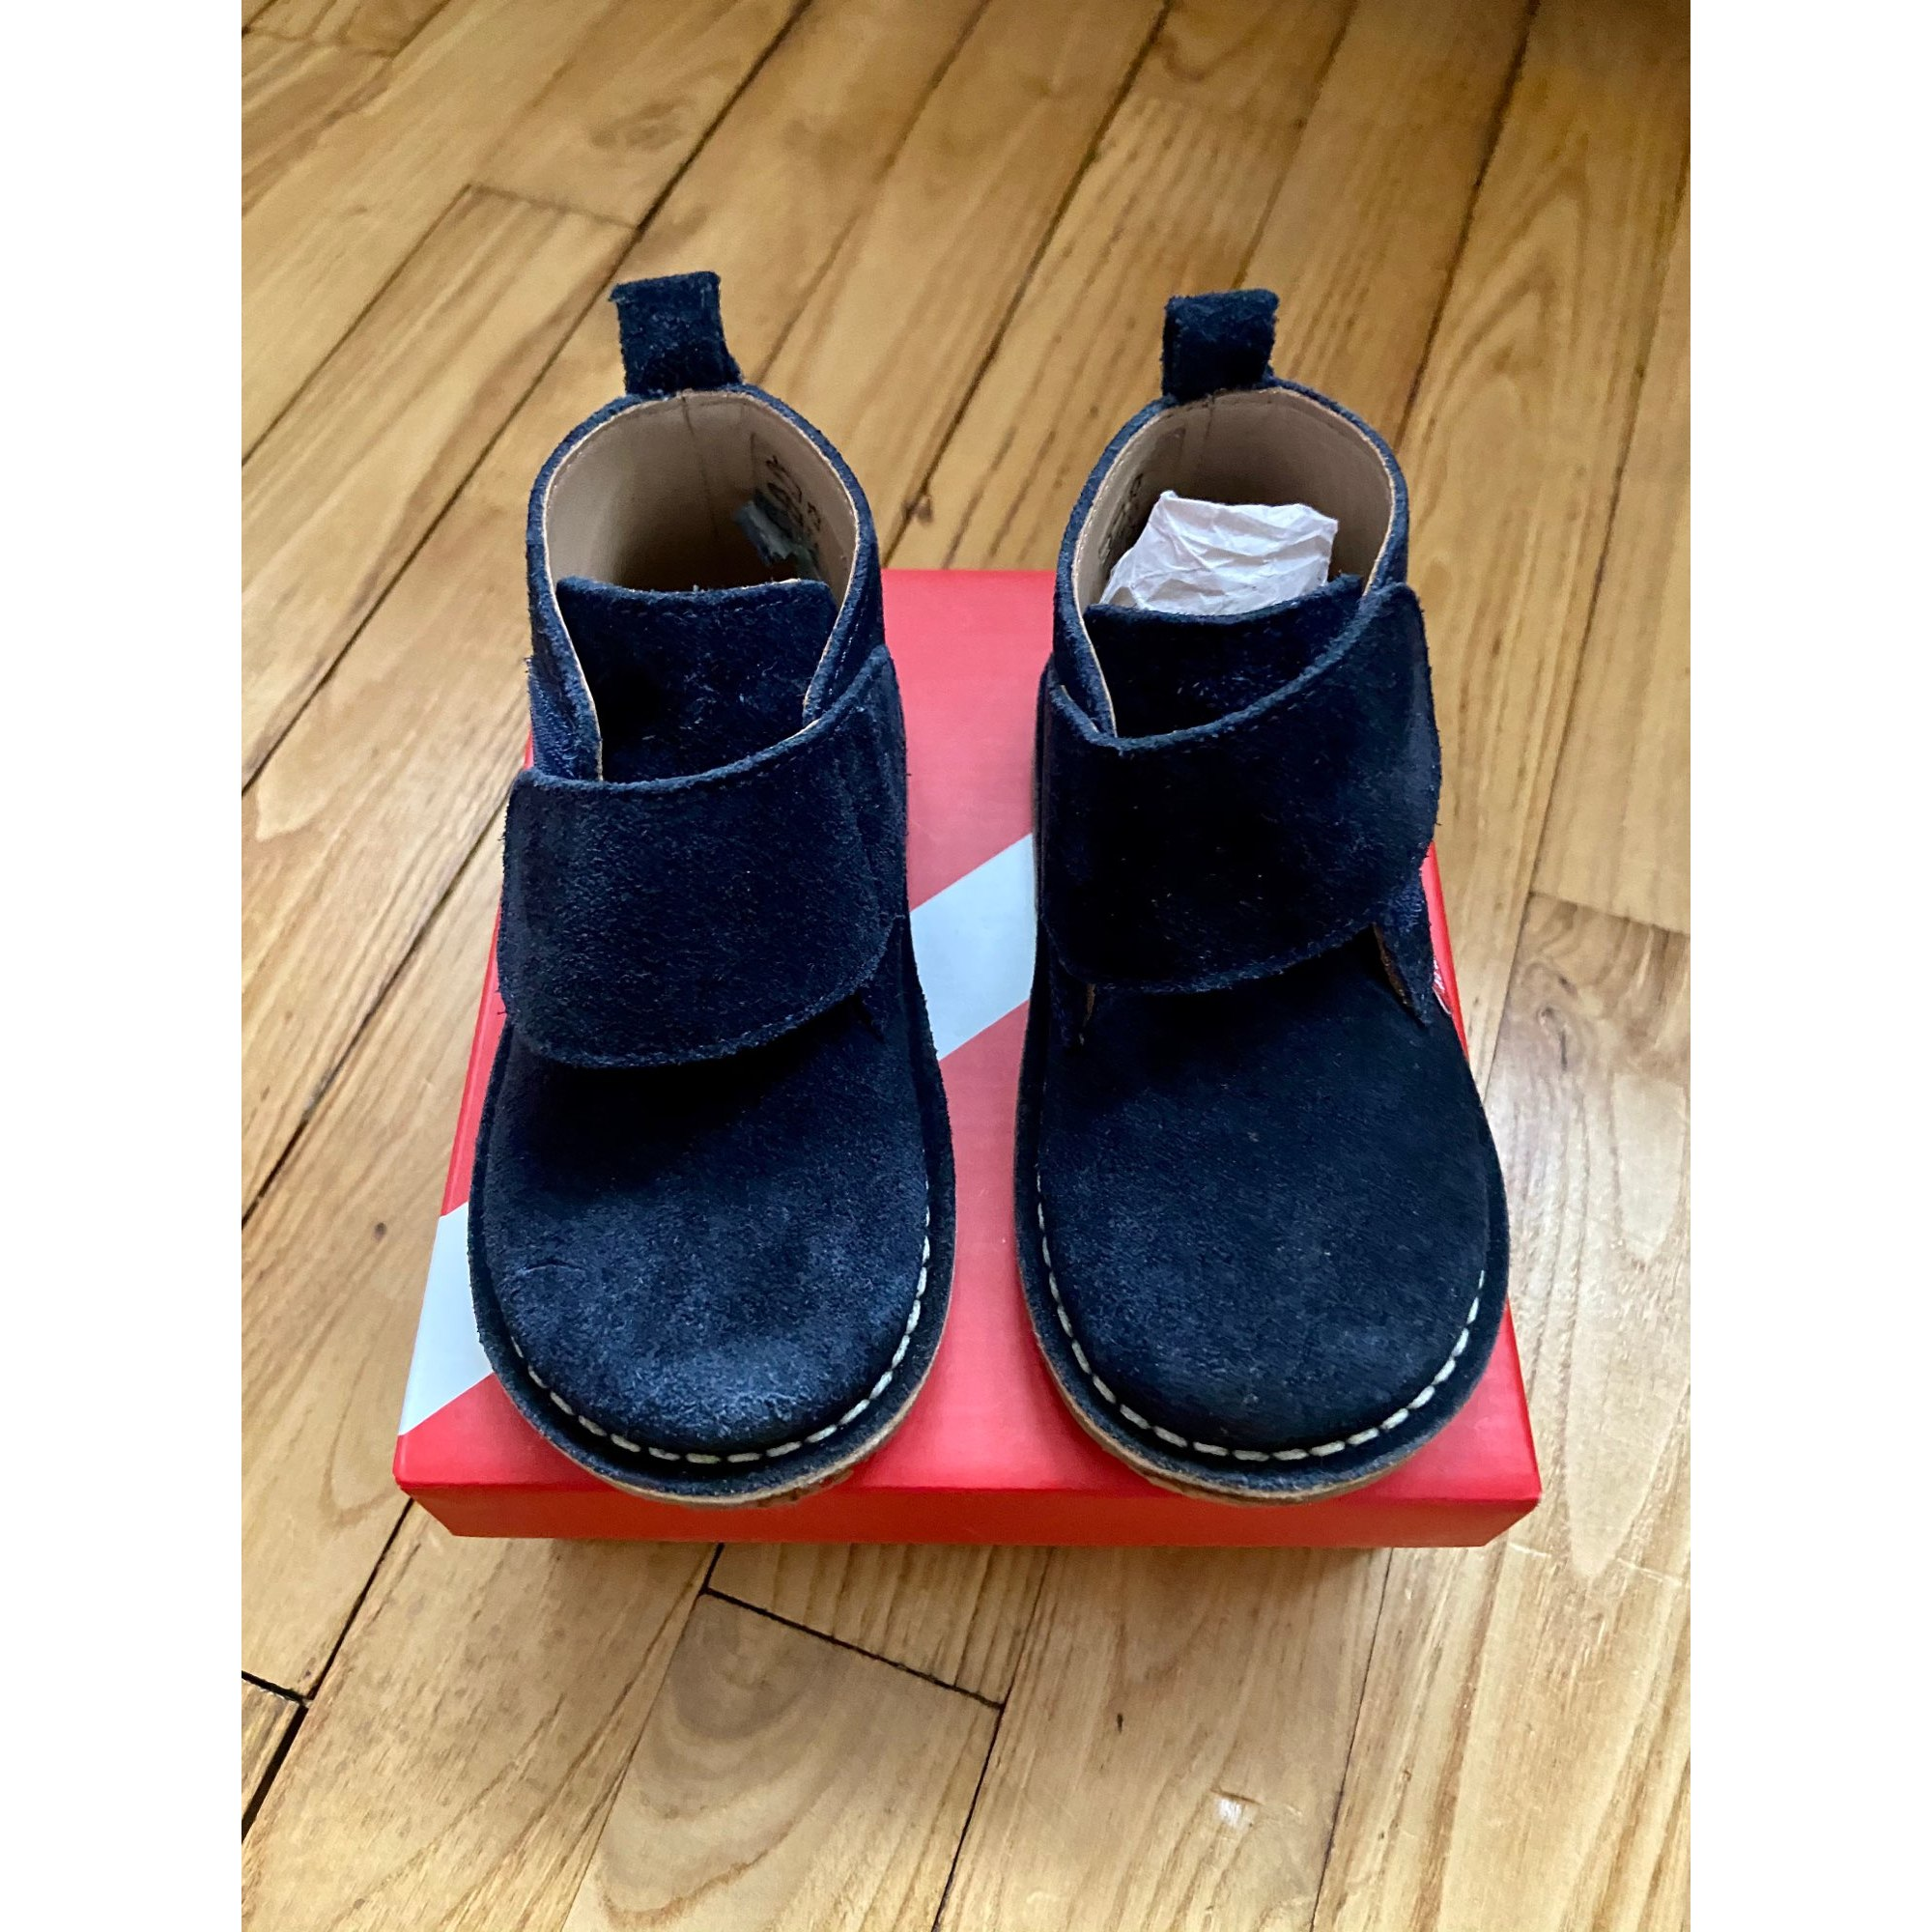 Ankle Boots KICKERS Blue, navy, turquoise